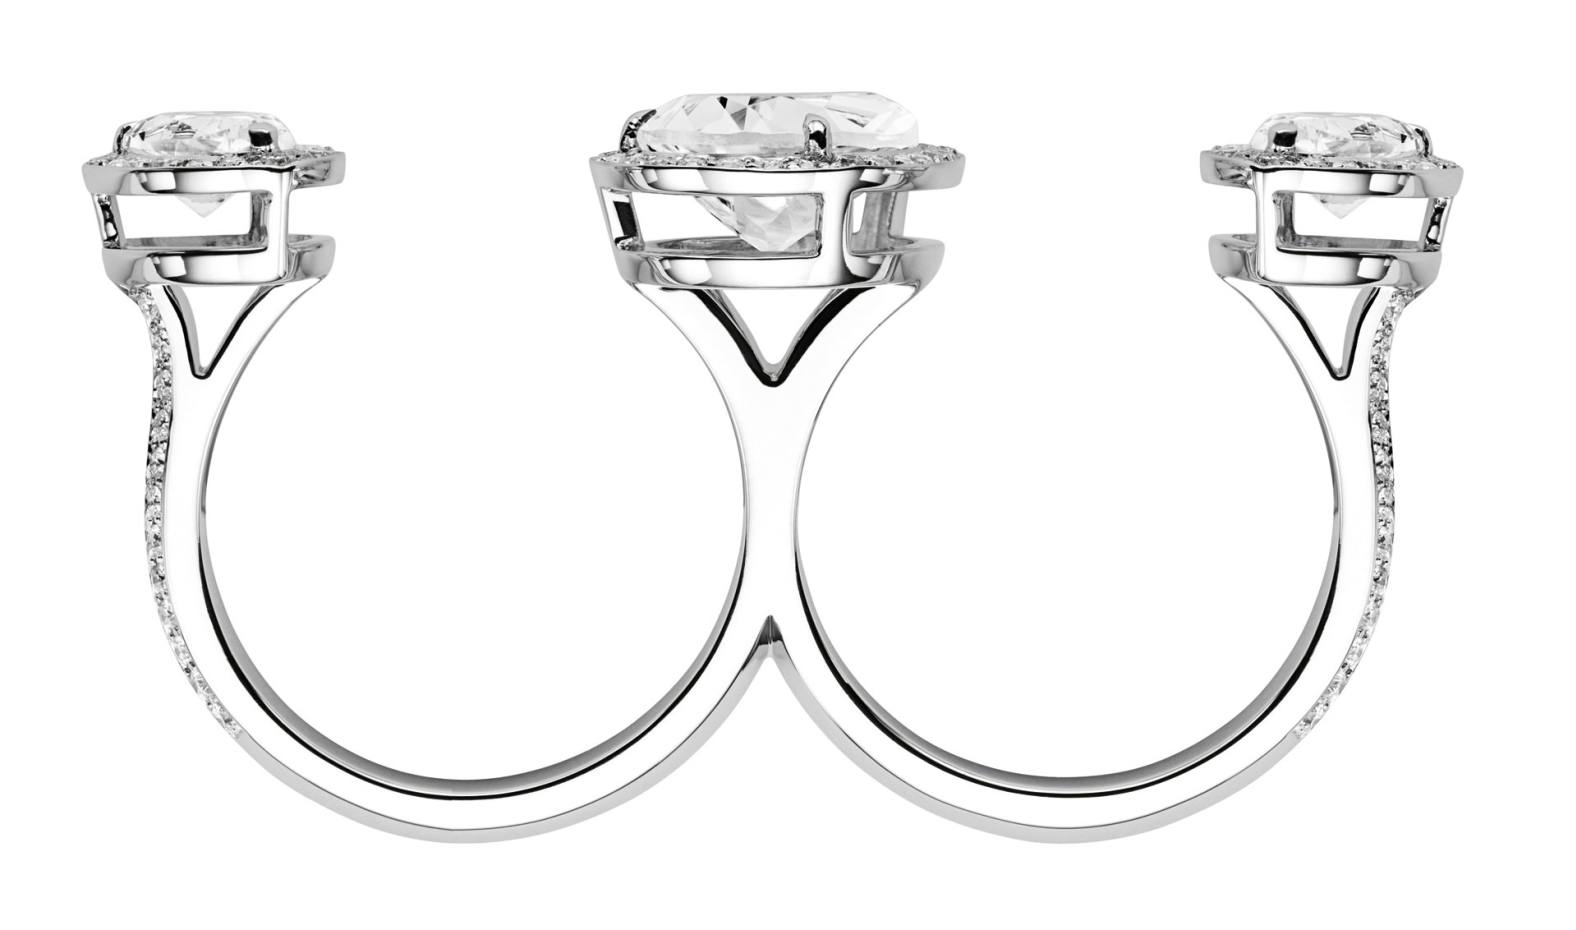 23955af3bc4d38 Atelier Swarovski by Penélope Cruz 18ct white-gold Lola Double Ring with  three white topaz